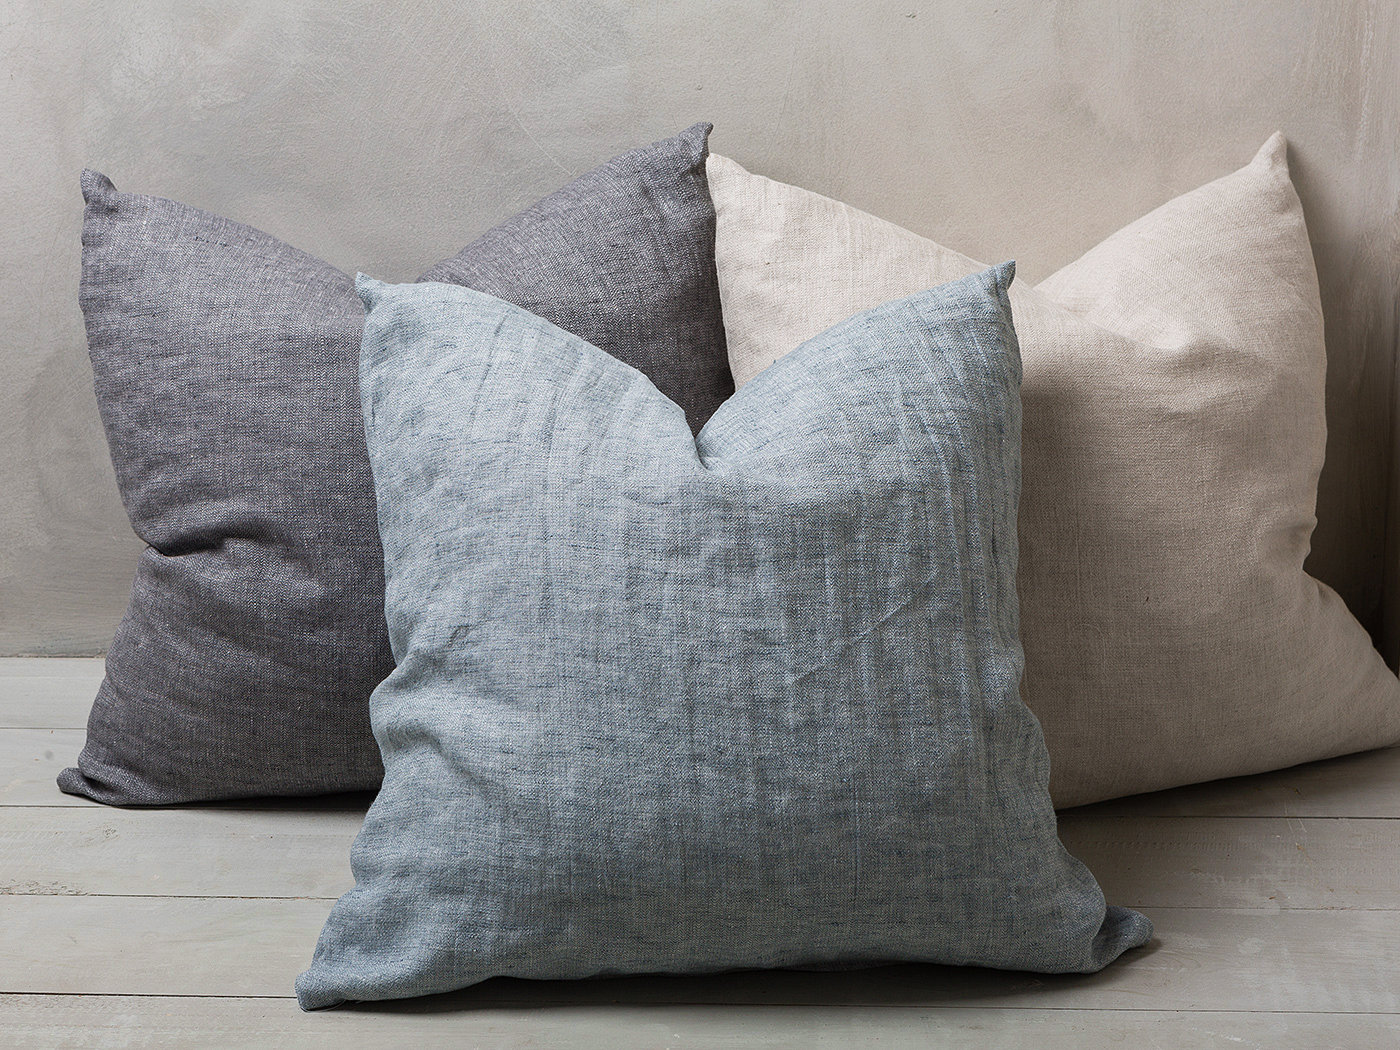 Linen Pillowcase Linen Pilow Cover Decorative Pillow Stonewashed Pillowcase Lumbar Pillow Covers